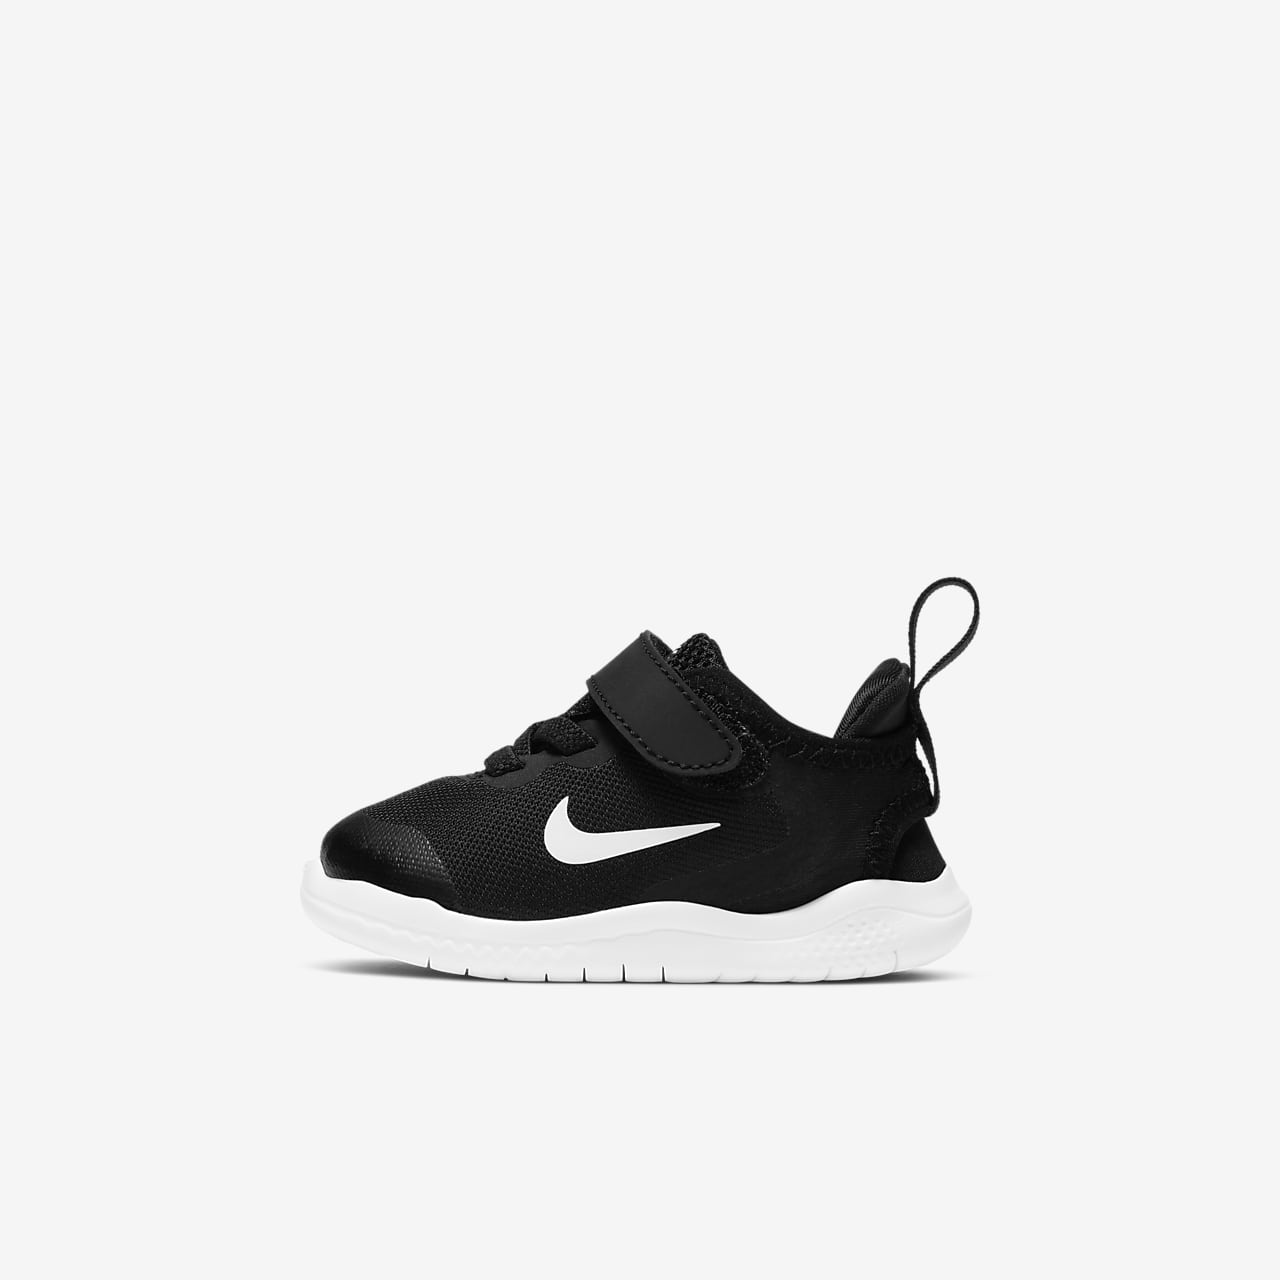 Nike Free RN 2018 Baby & Toddler Shoe